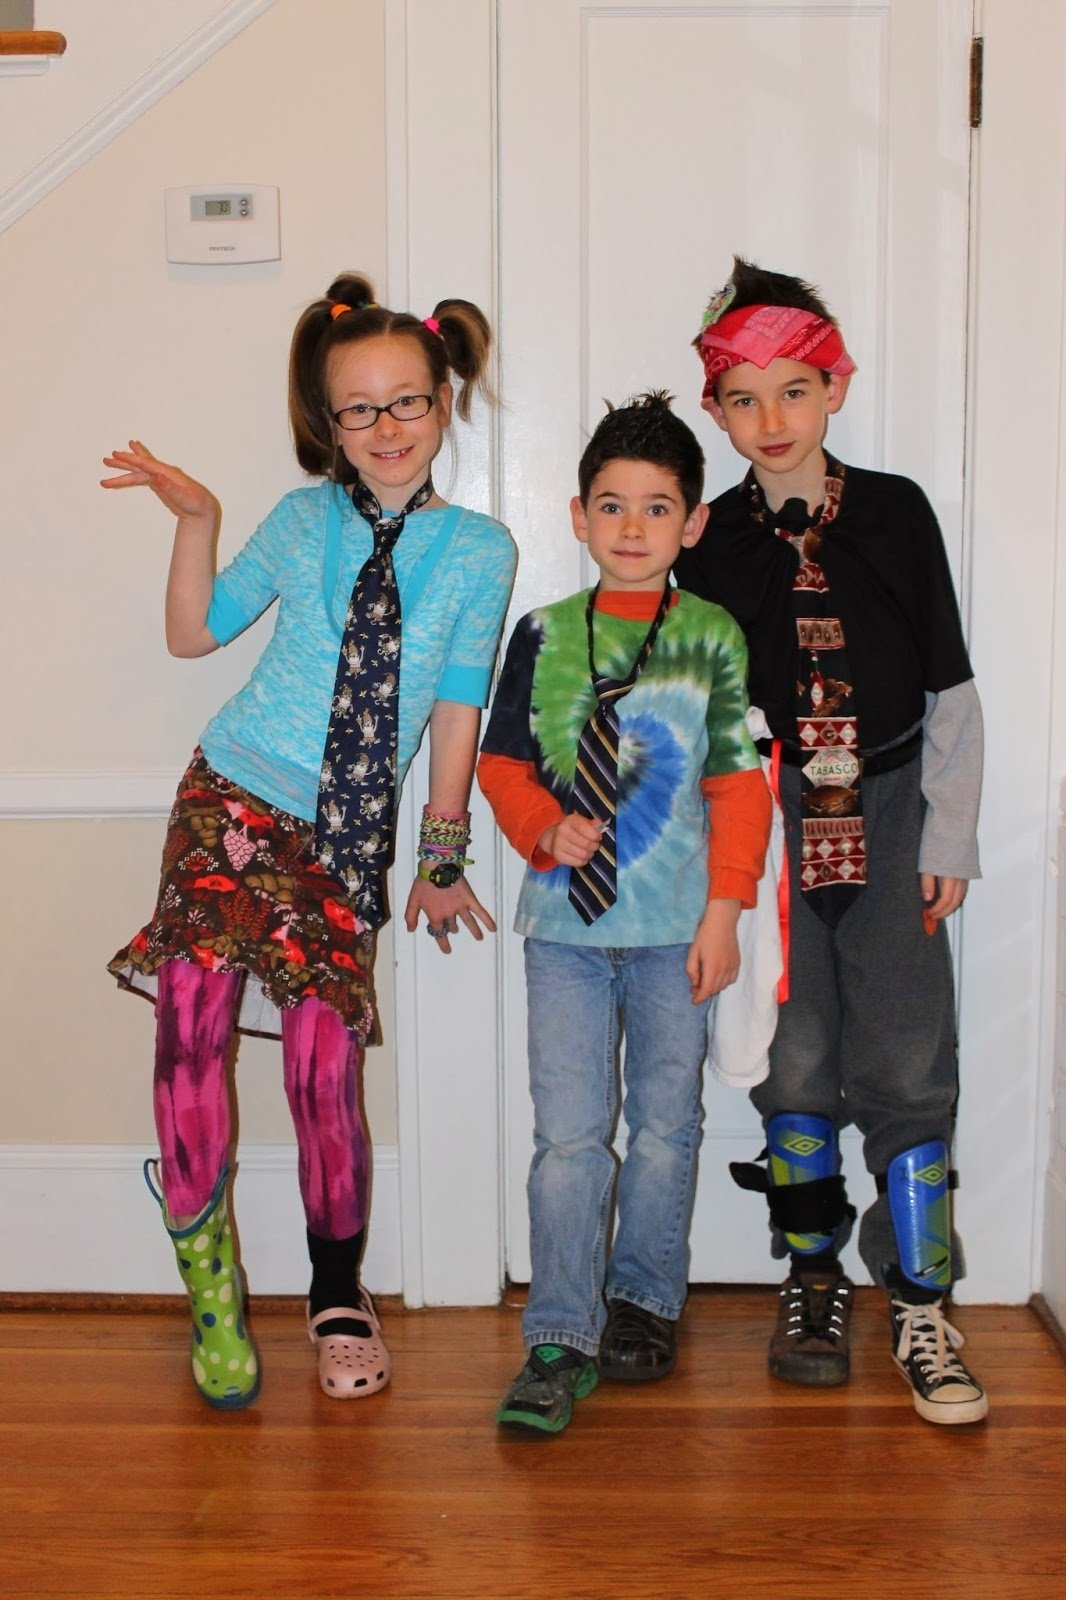 10 Attractive Ideas For Wacky Tacky Day life in ardmore wacky tacky day 1 2020